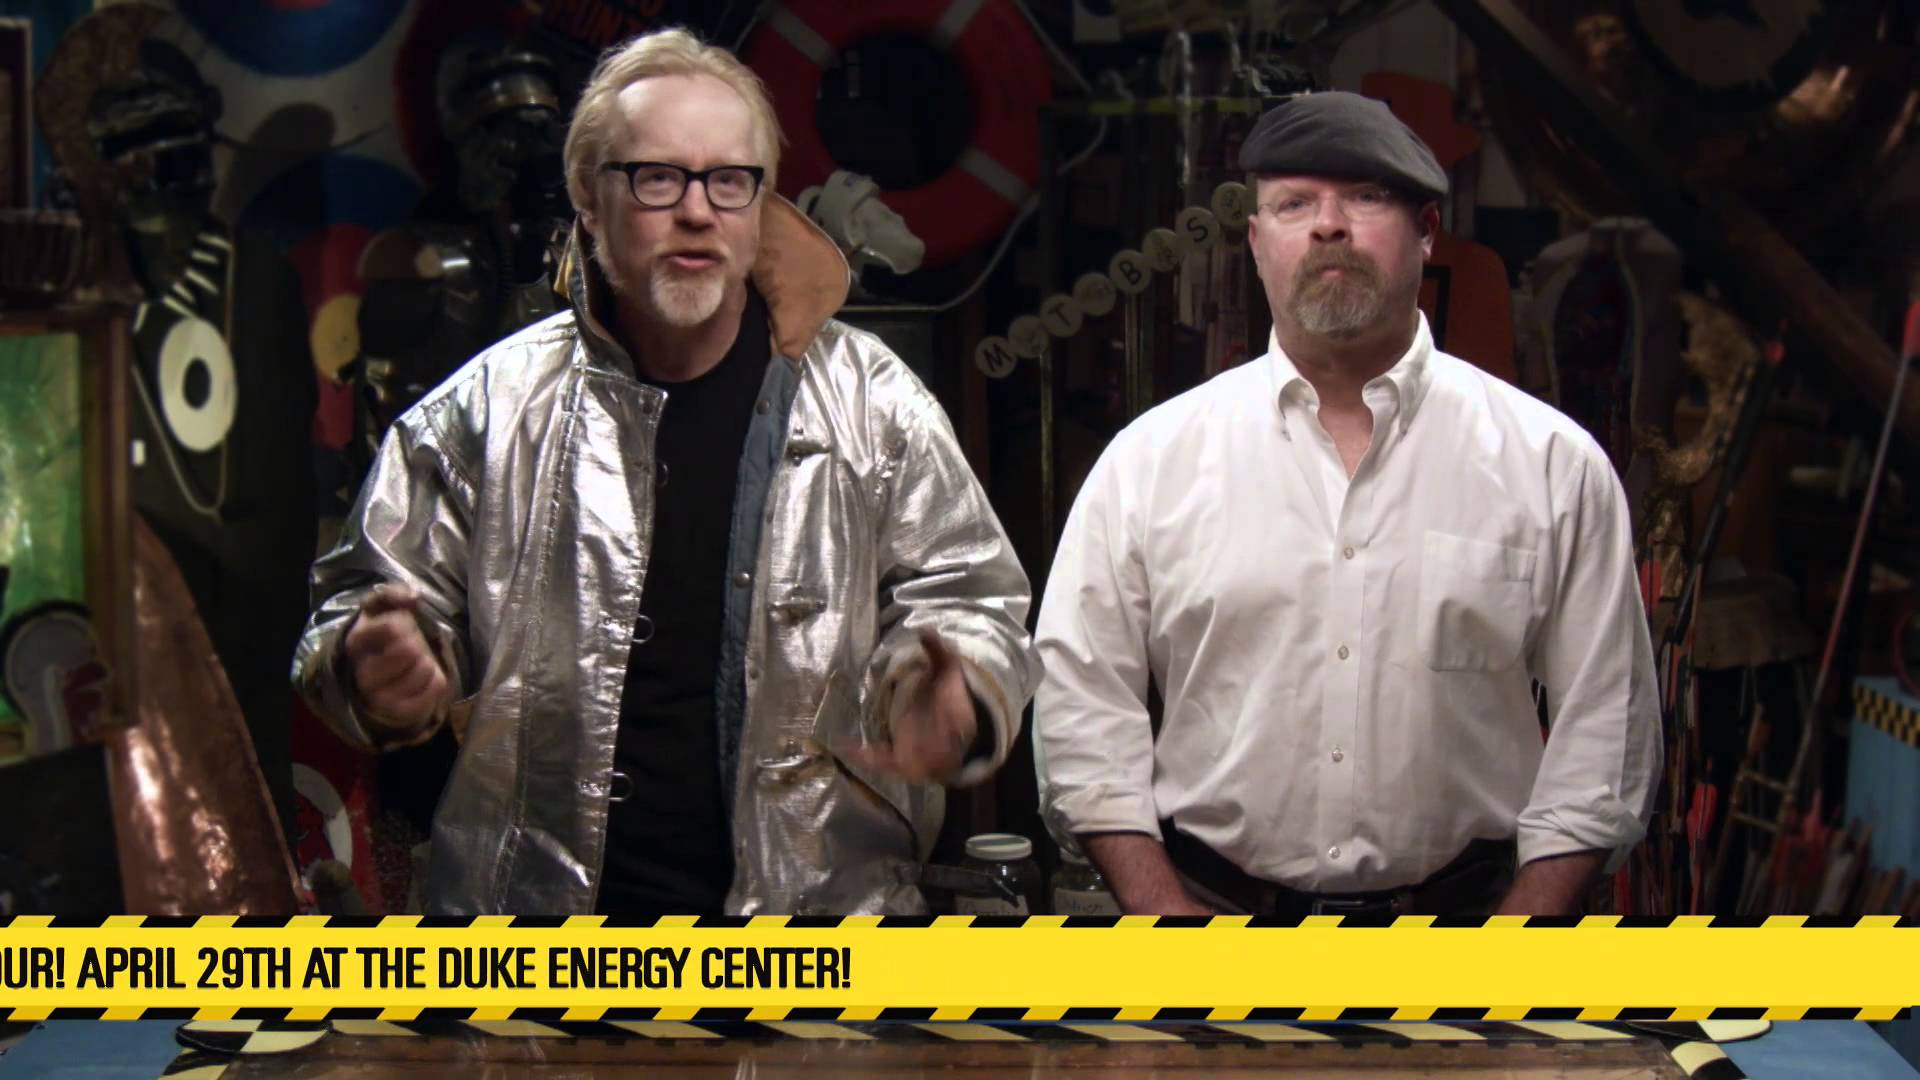 'Mythbusters' stars come to the Bob Carr Theater in Orlando this April